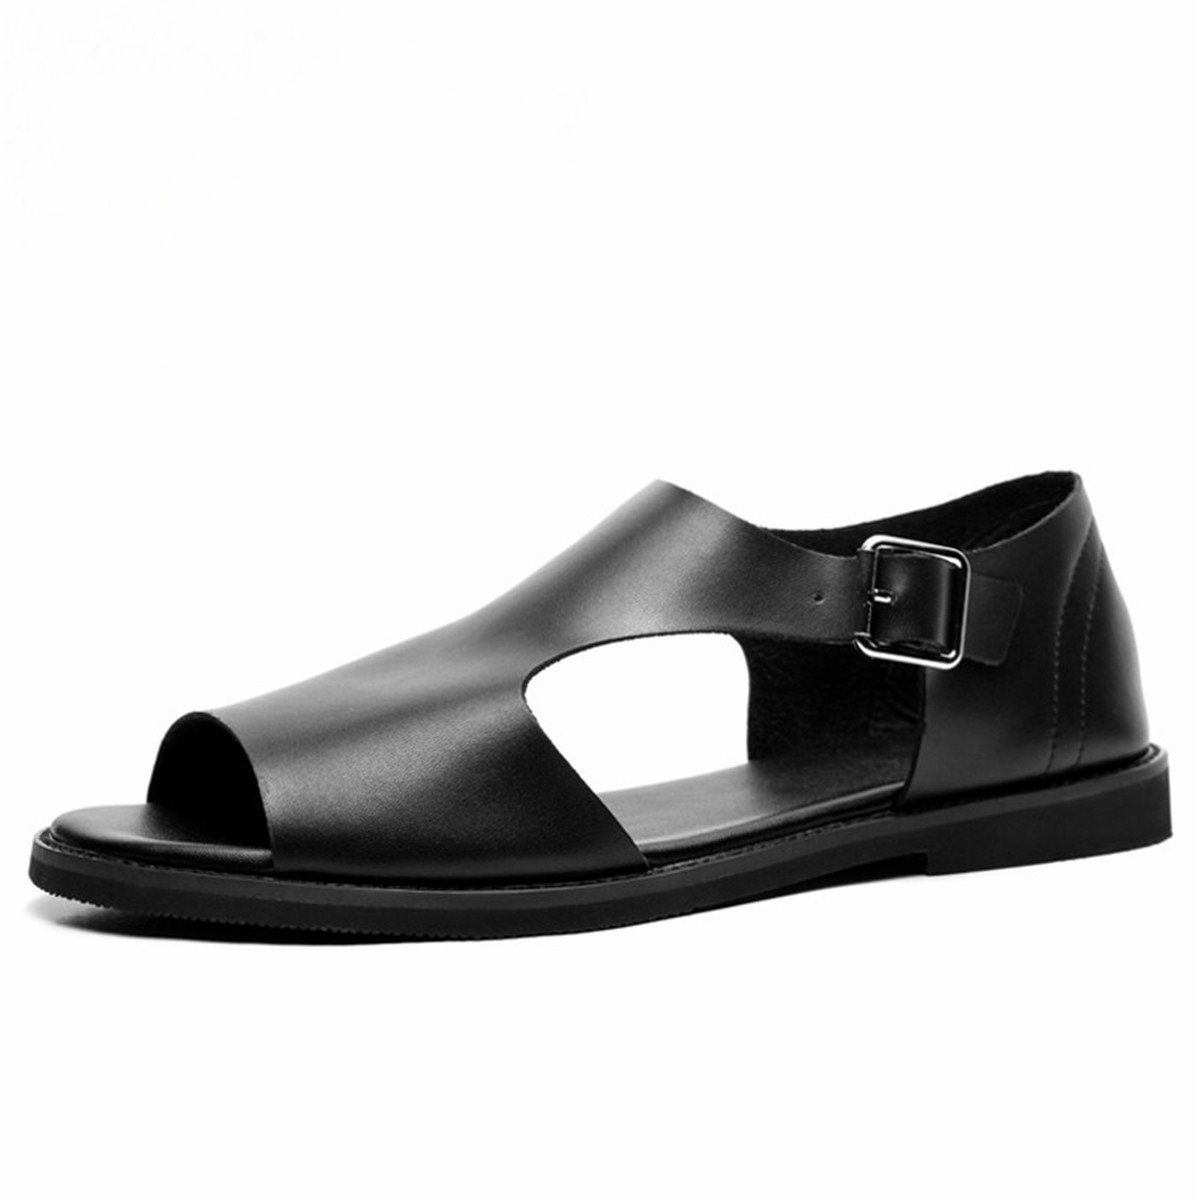 outlet store d4b05 16cd7 Nutsima Summer Men s Sandals Sandals Sandals Leather Simple Black  Comfortable Men Beach Shoes Gladiator Open-Toed Sandals Men 6.5 D(M) US Black  B07CVBR814 ...